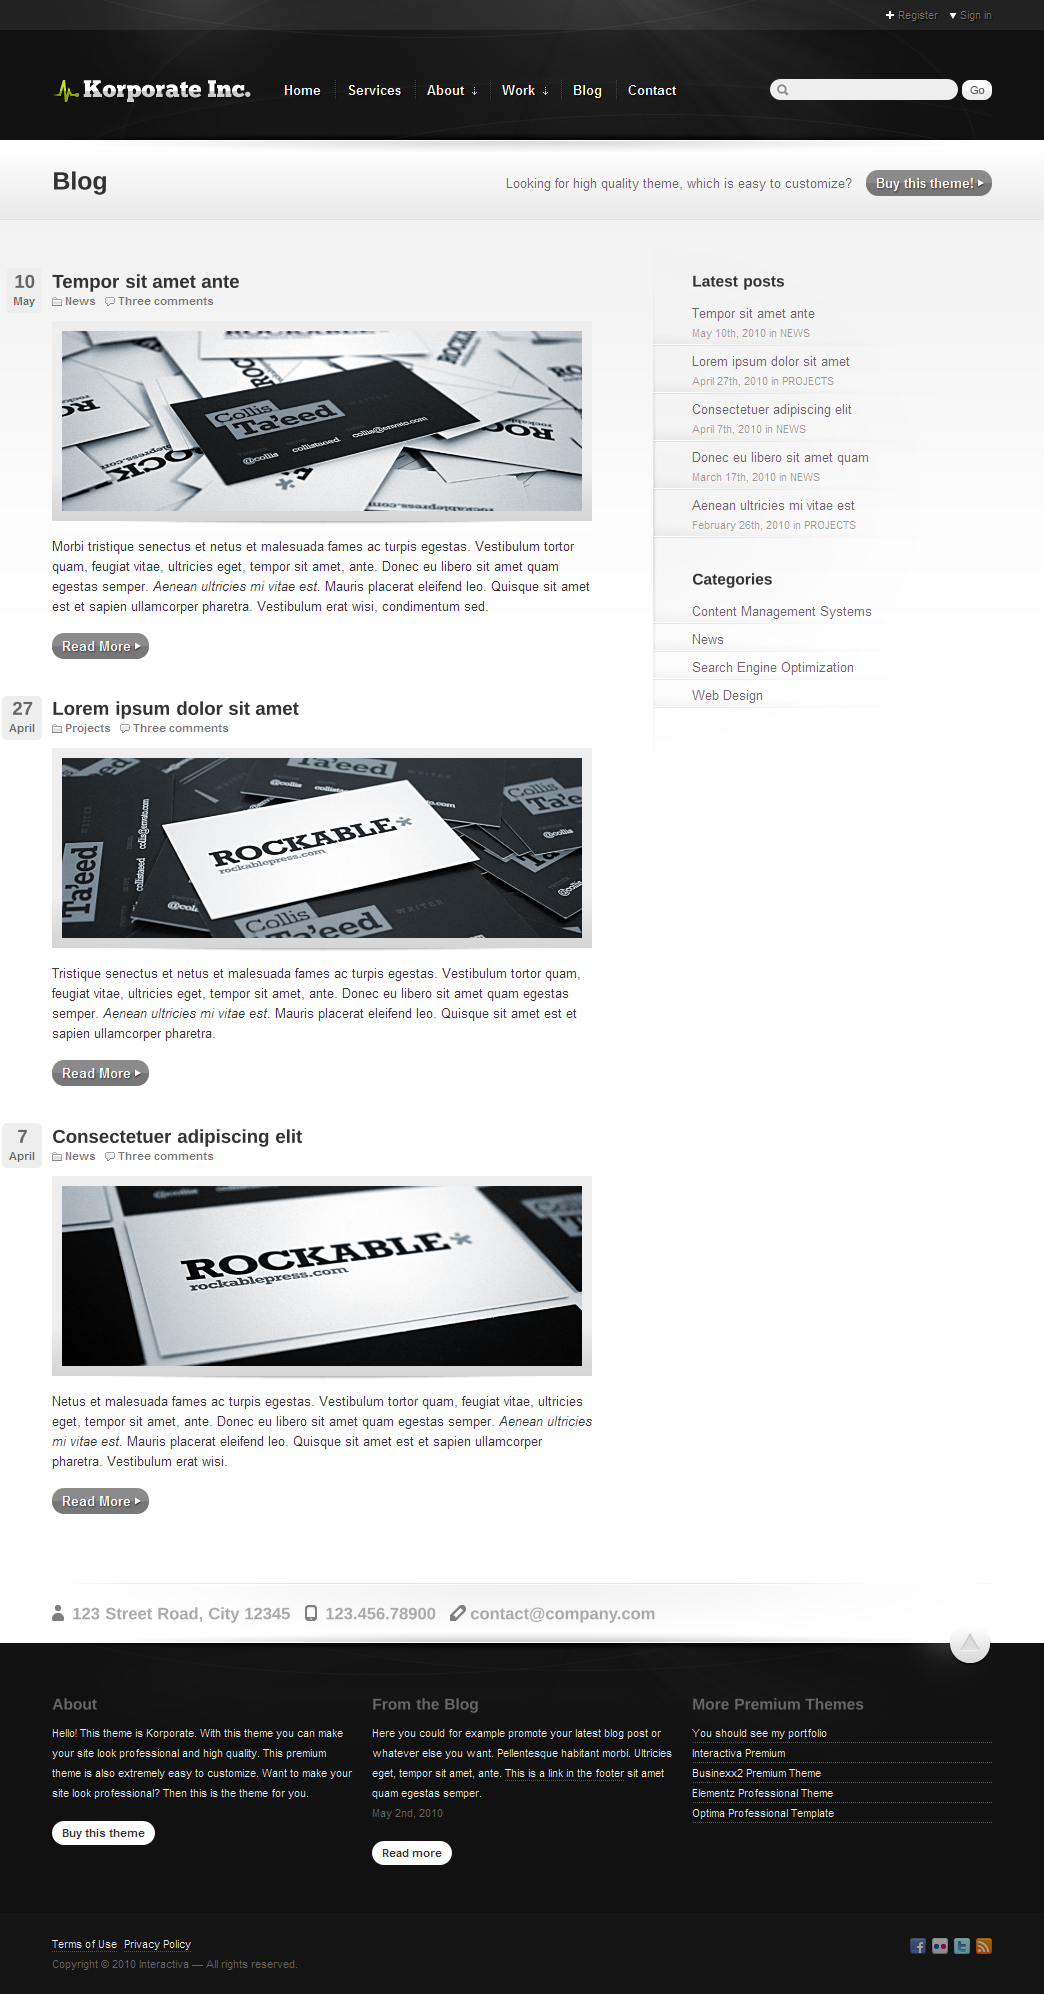 Korporate - Business and Corporate - Blog with the grey color theme